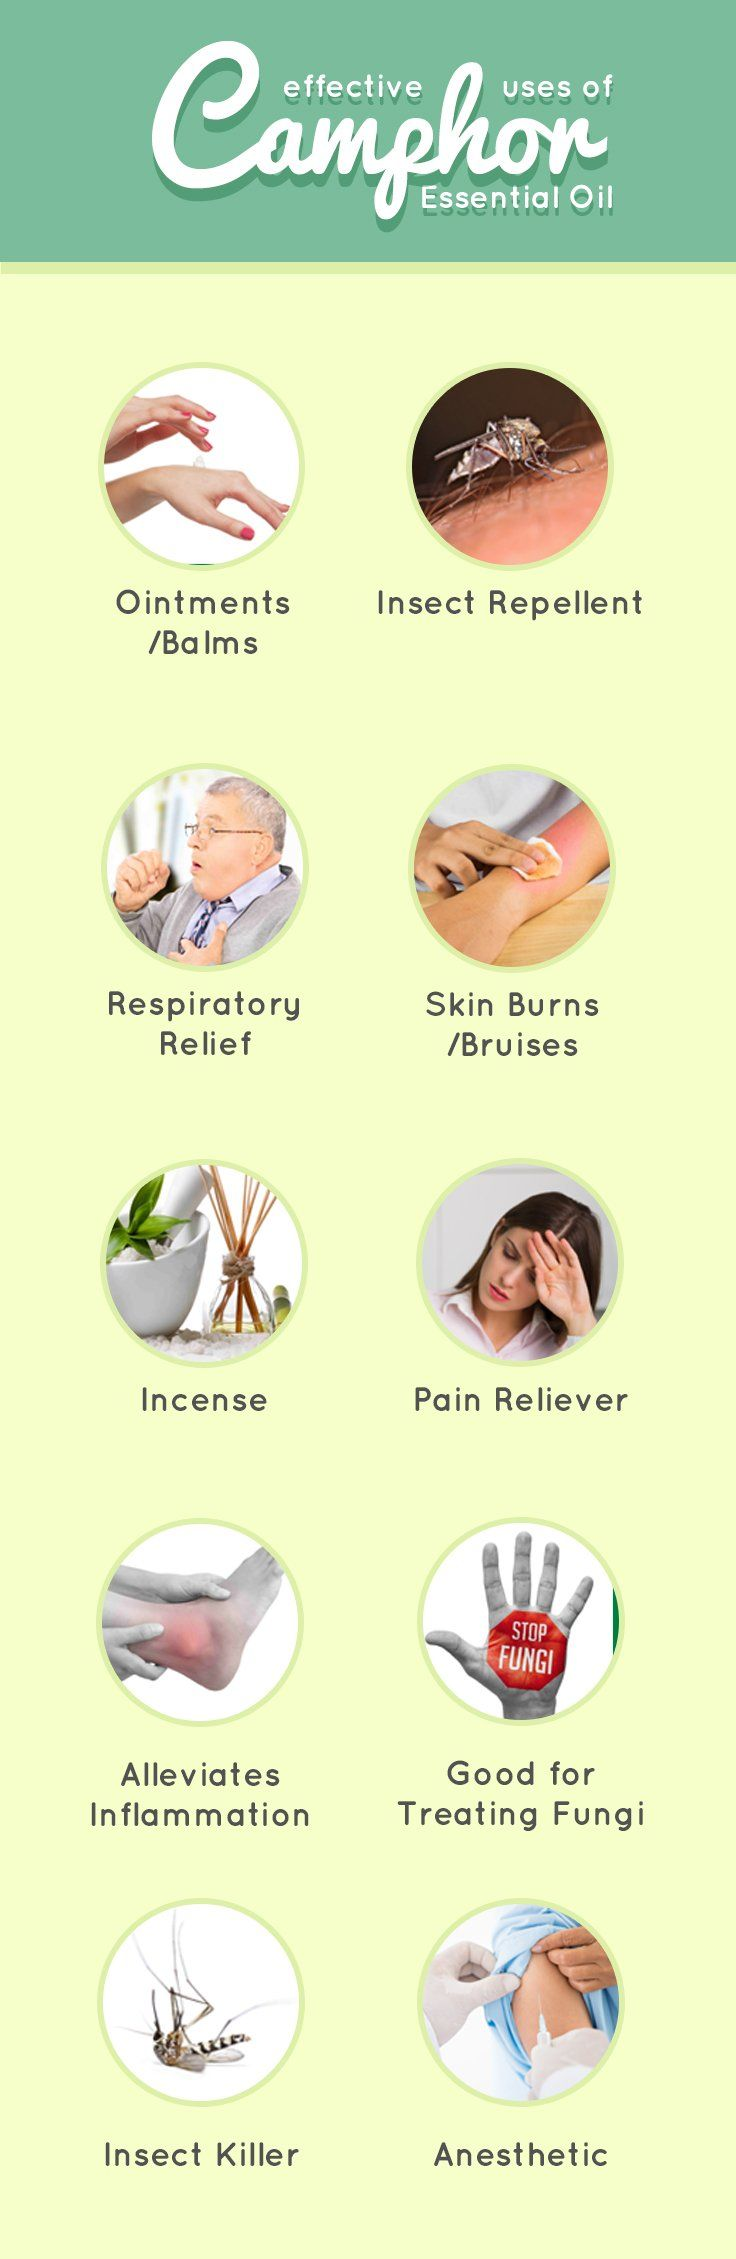 10 Awesome Ways To Use Camphor Essential Oil | Good Witch